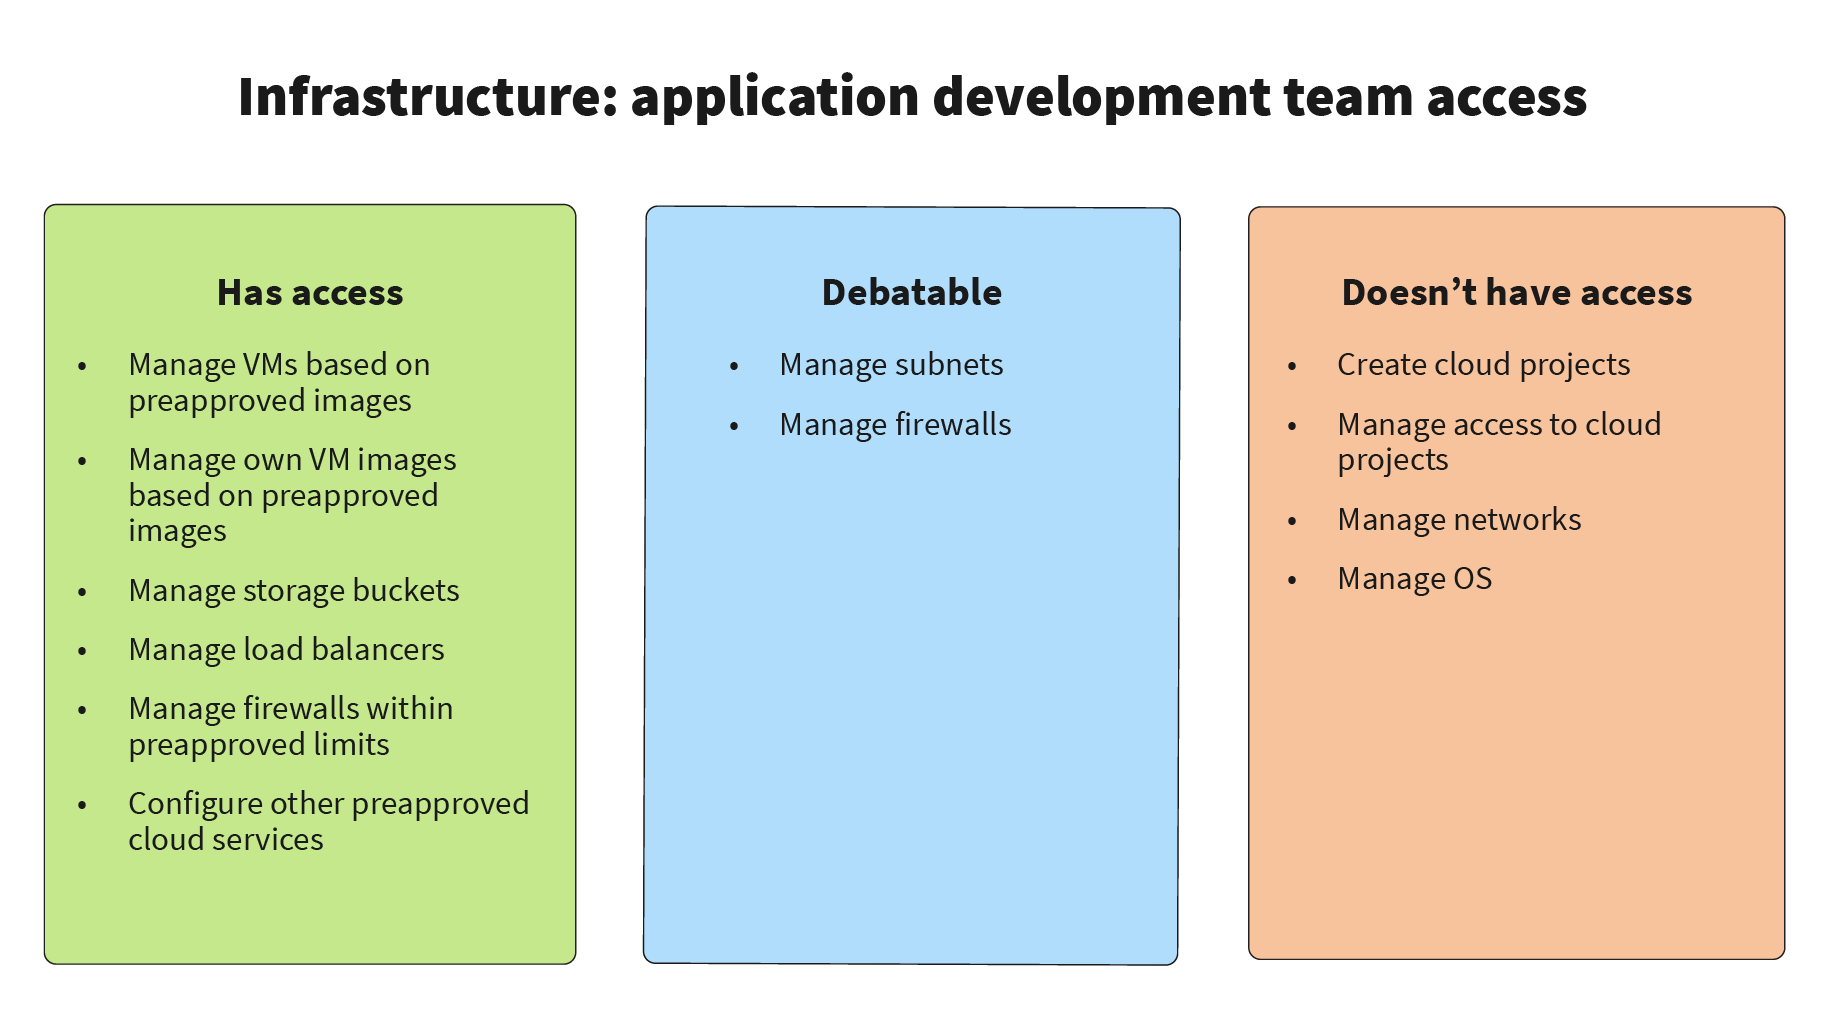 Infrastructure: application development team access